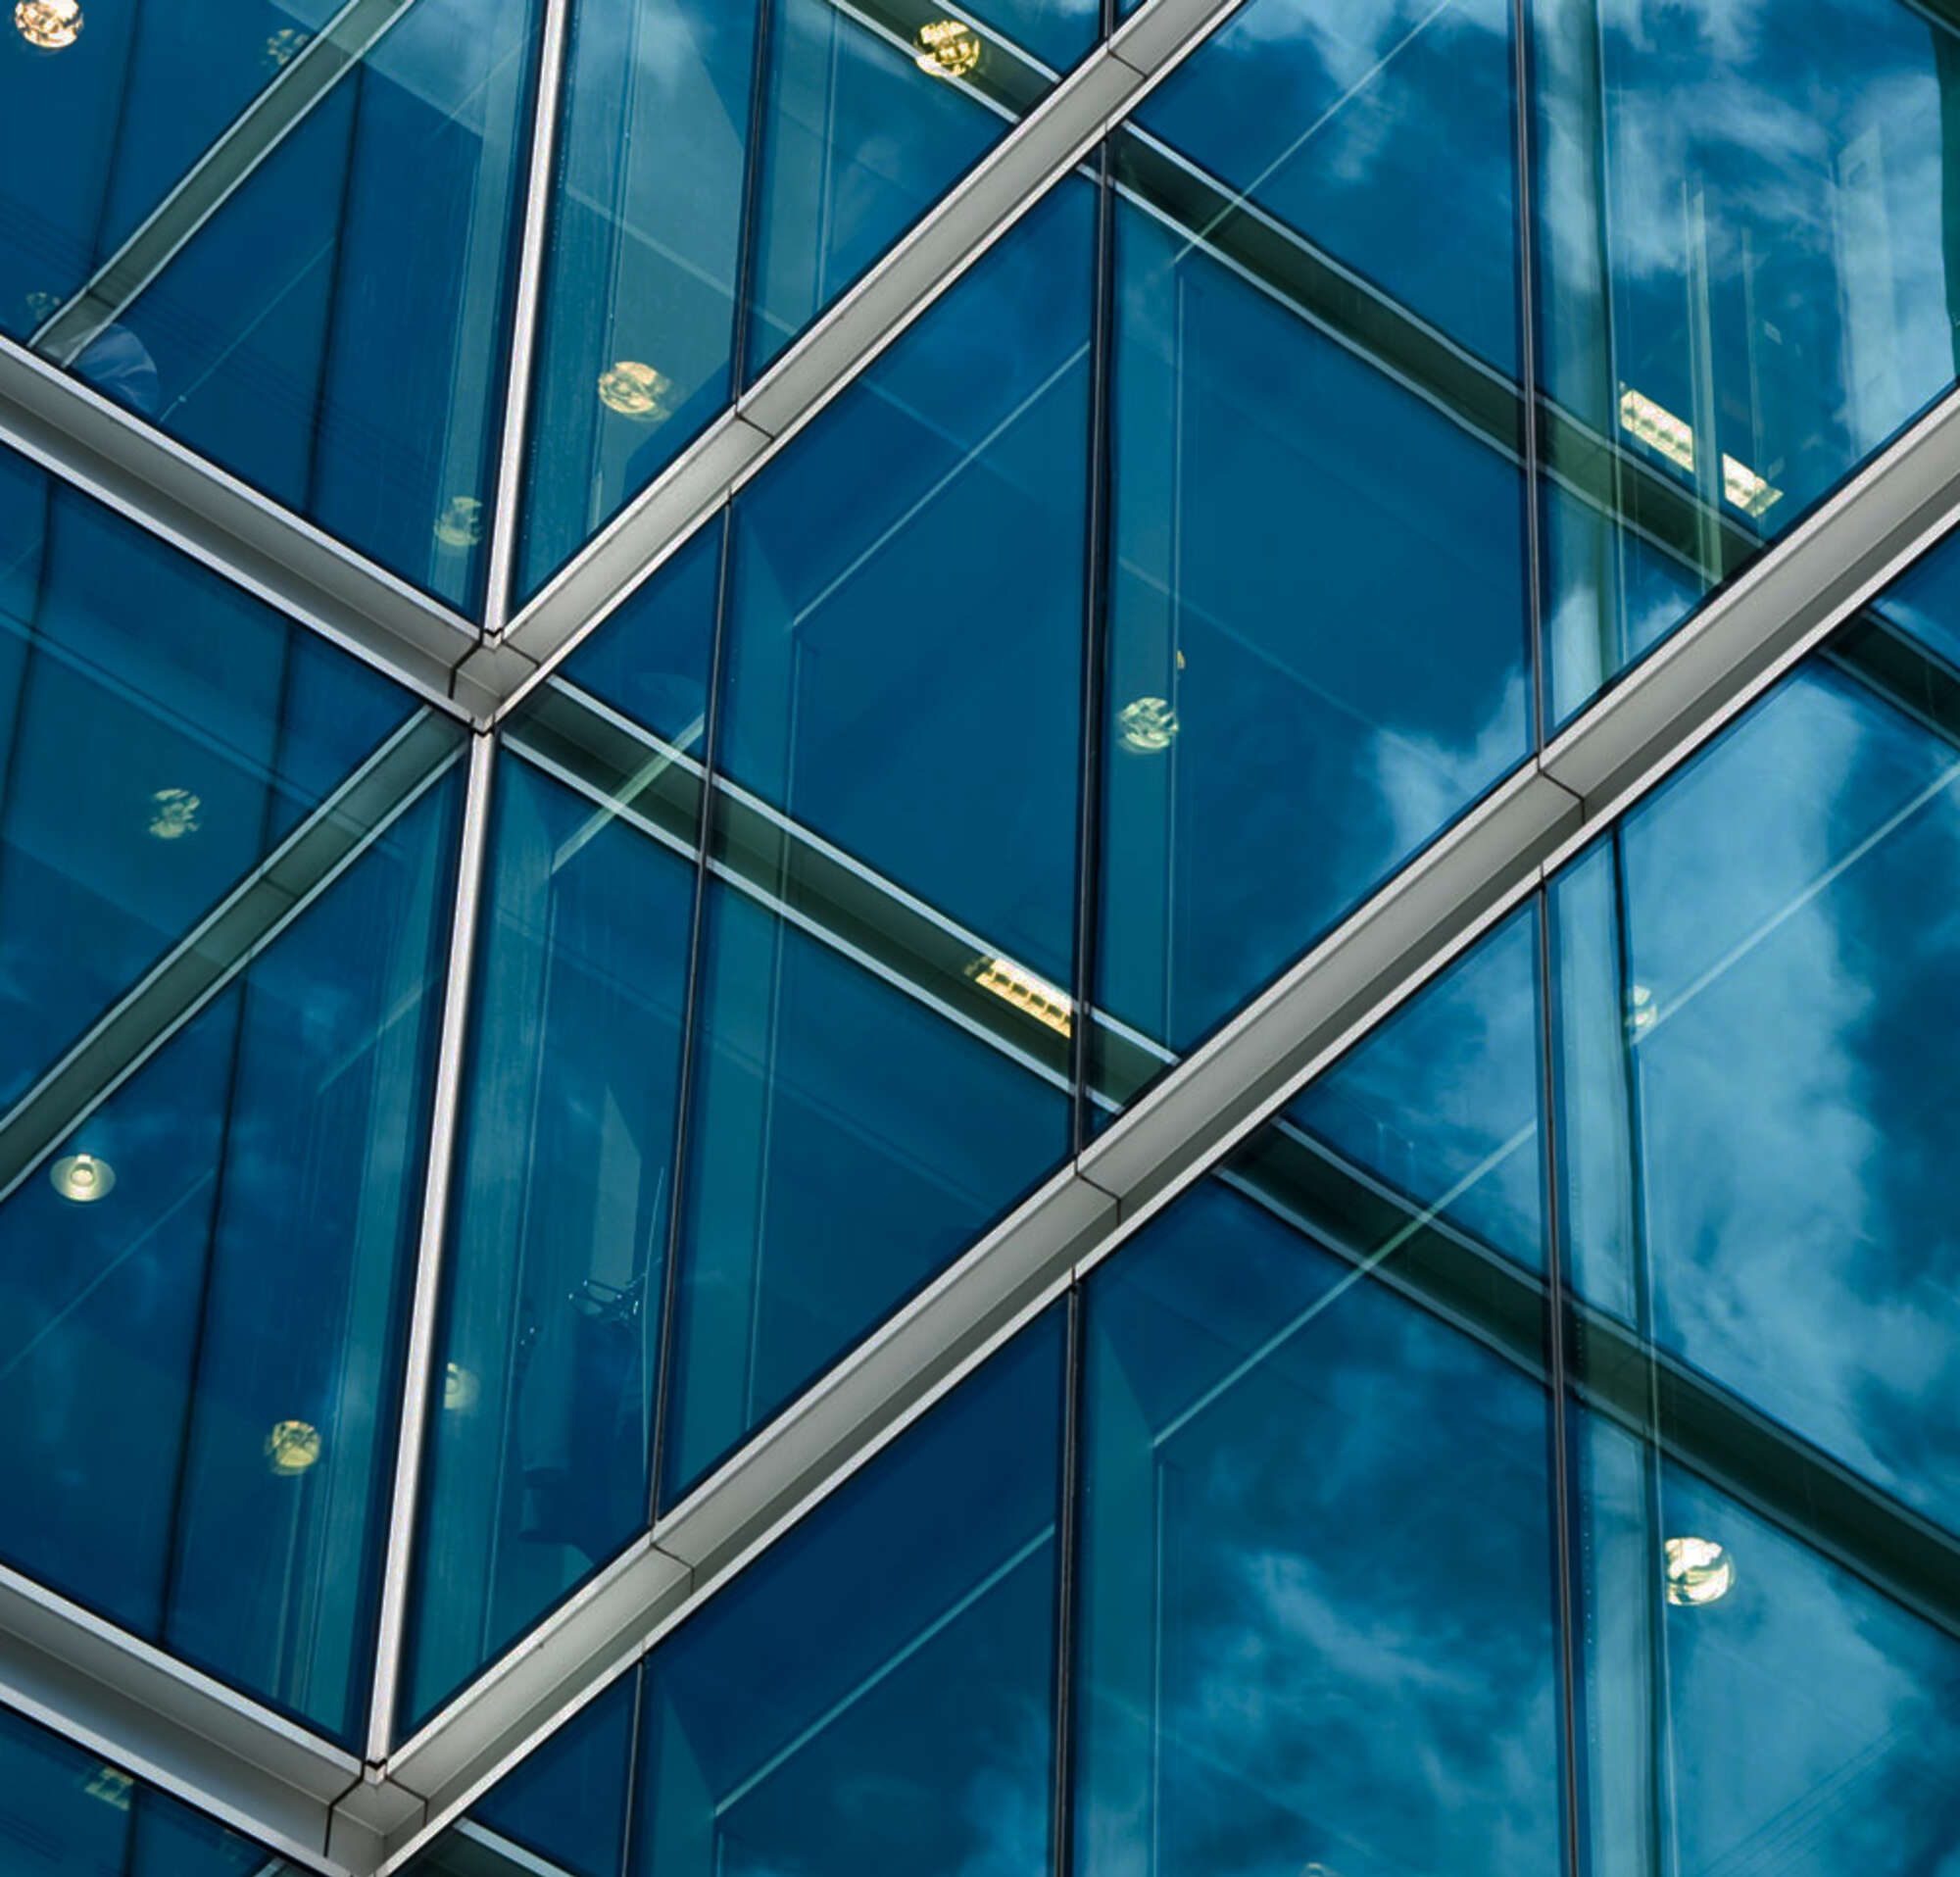 Reflective windows on a building reflecting lights, a blue sky with clouds, and other windows.